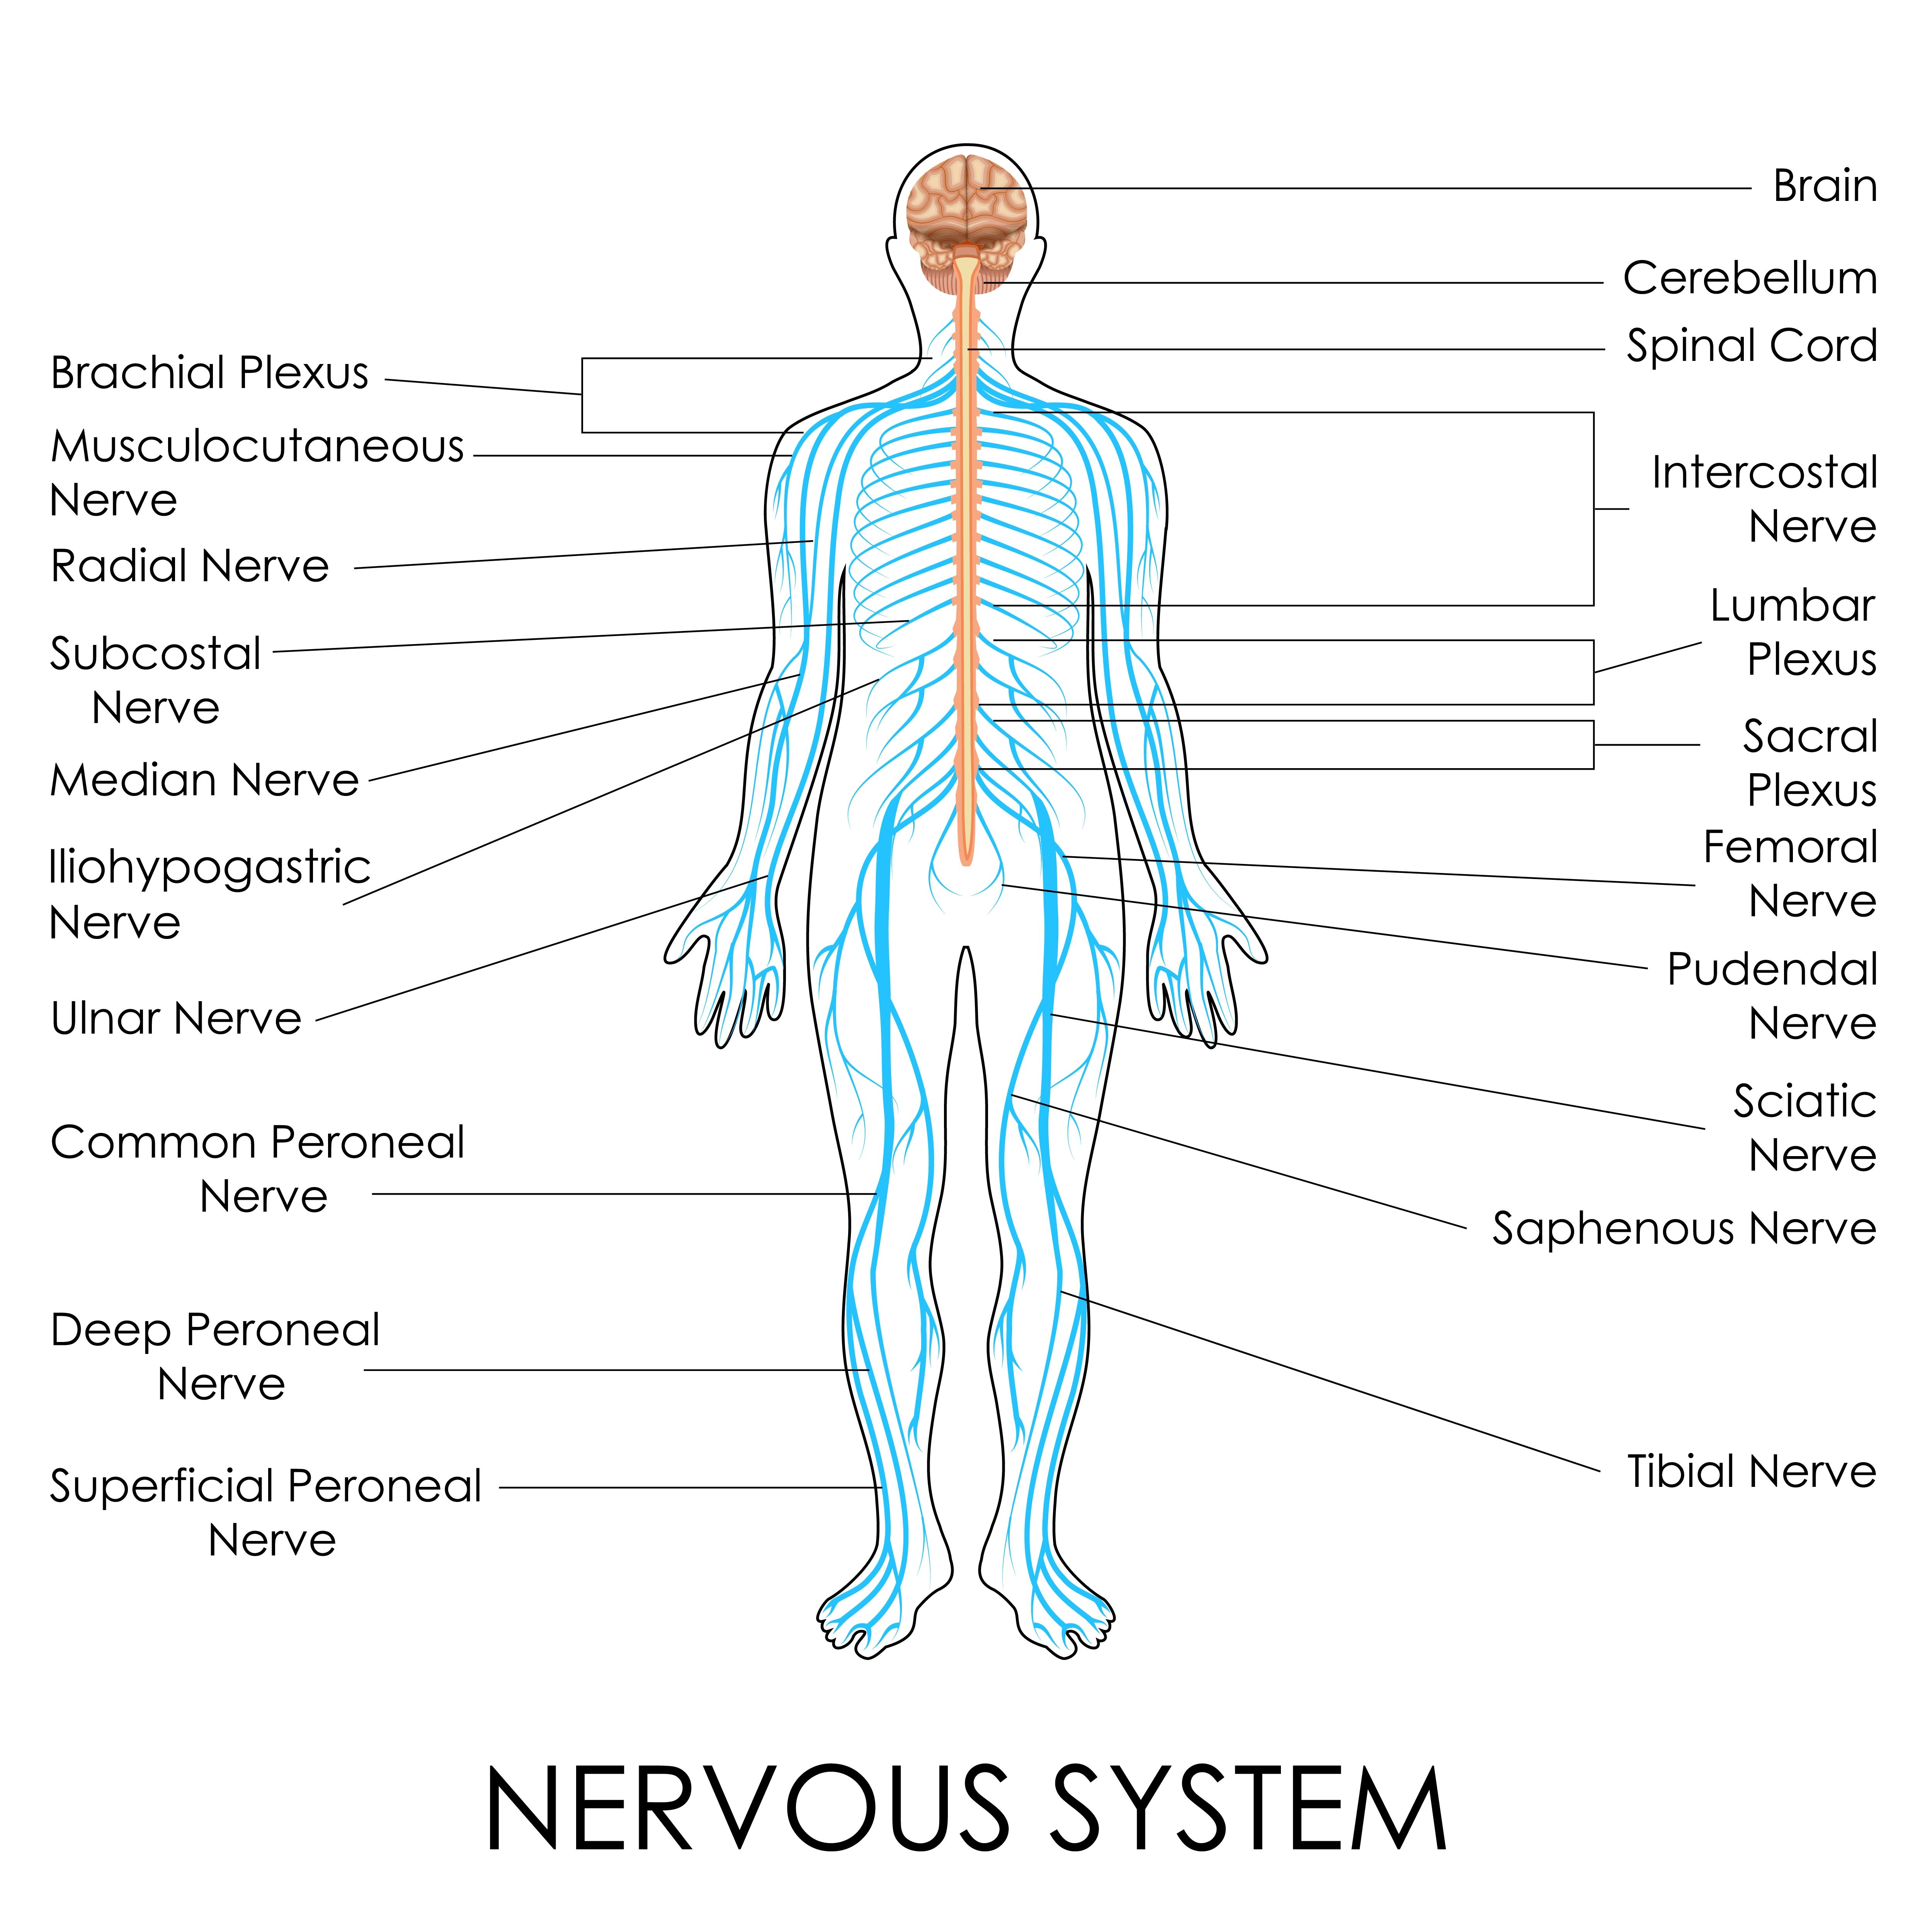 hight resolution of nerves of the body human anatomy diagram